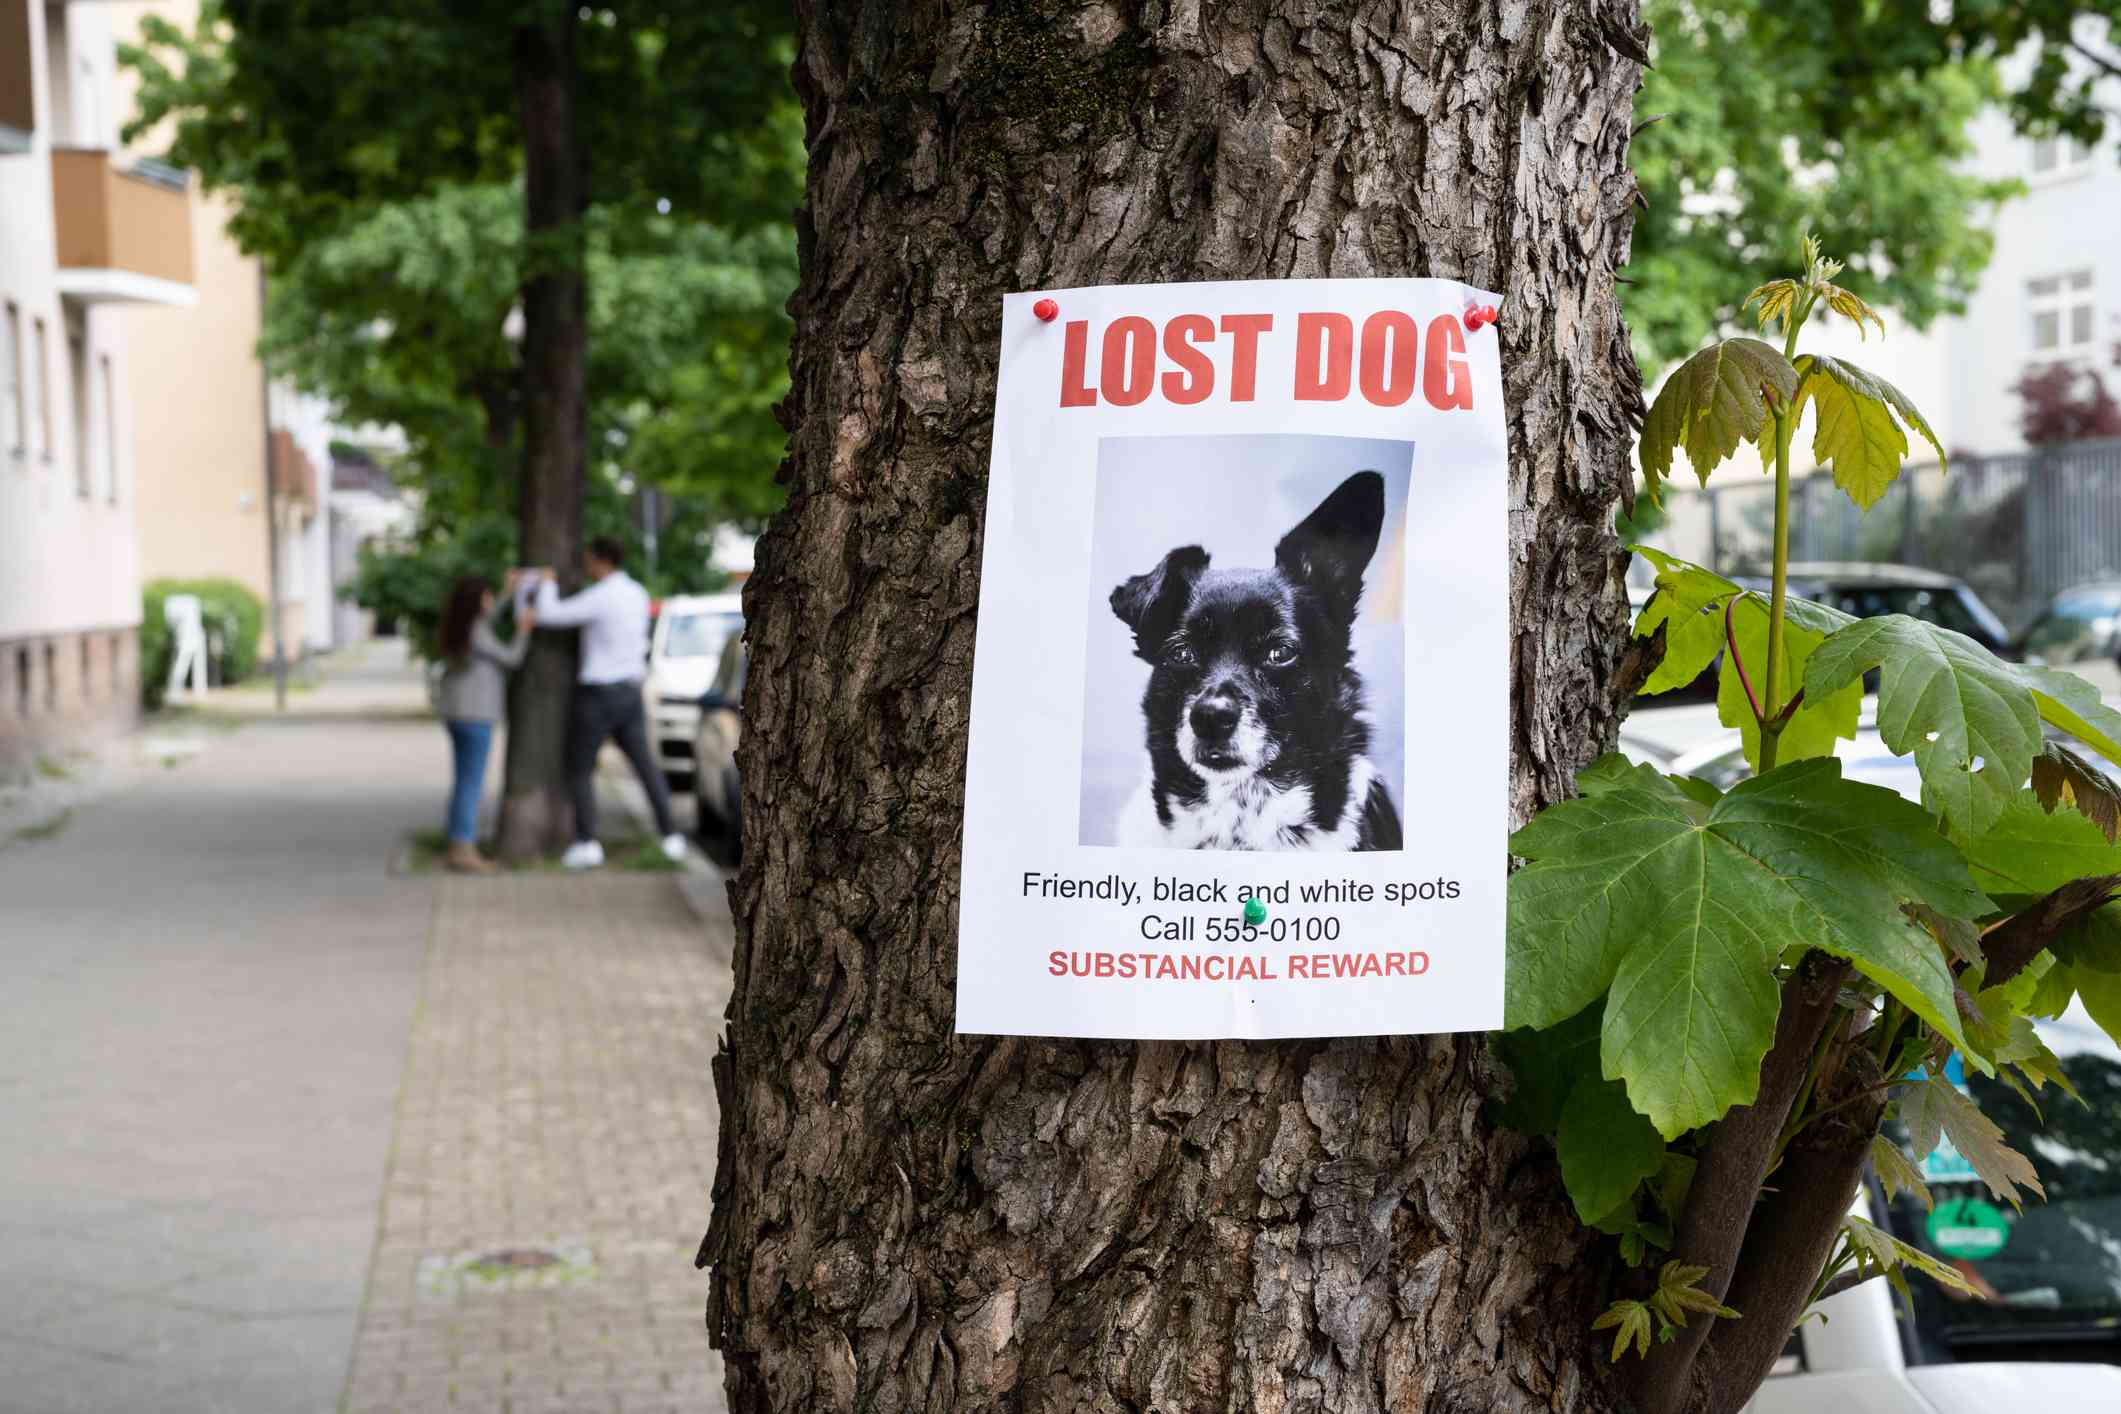 Lost dog poster on a tree.